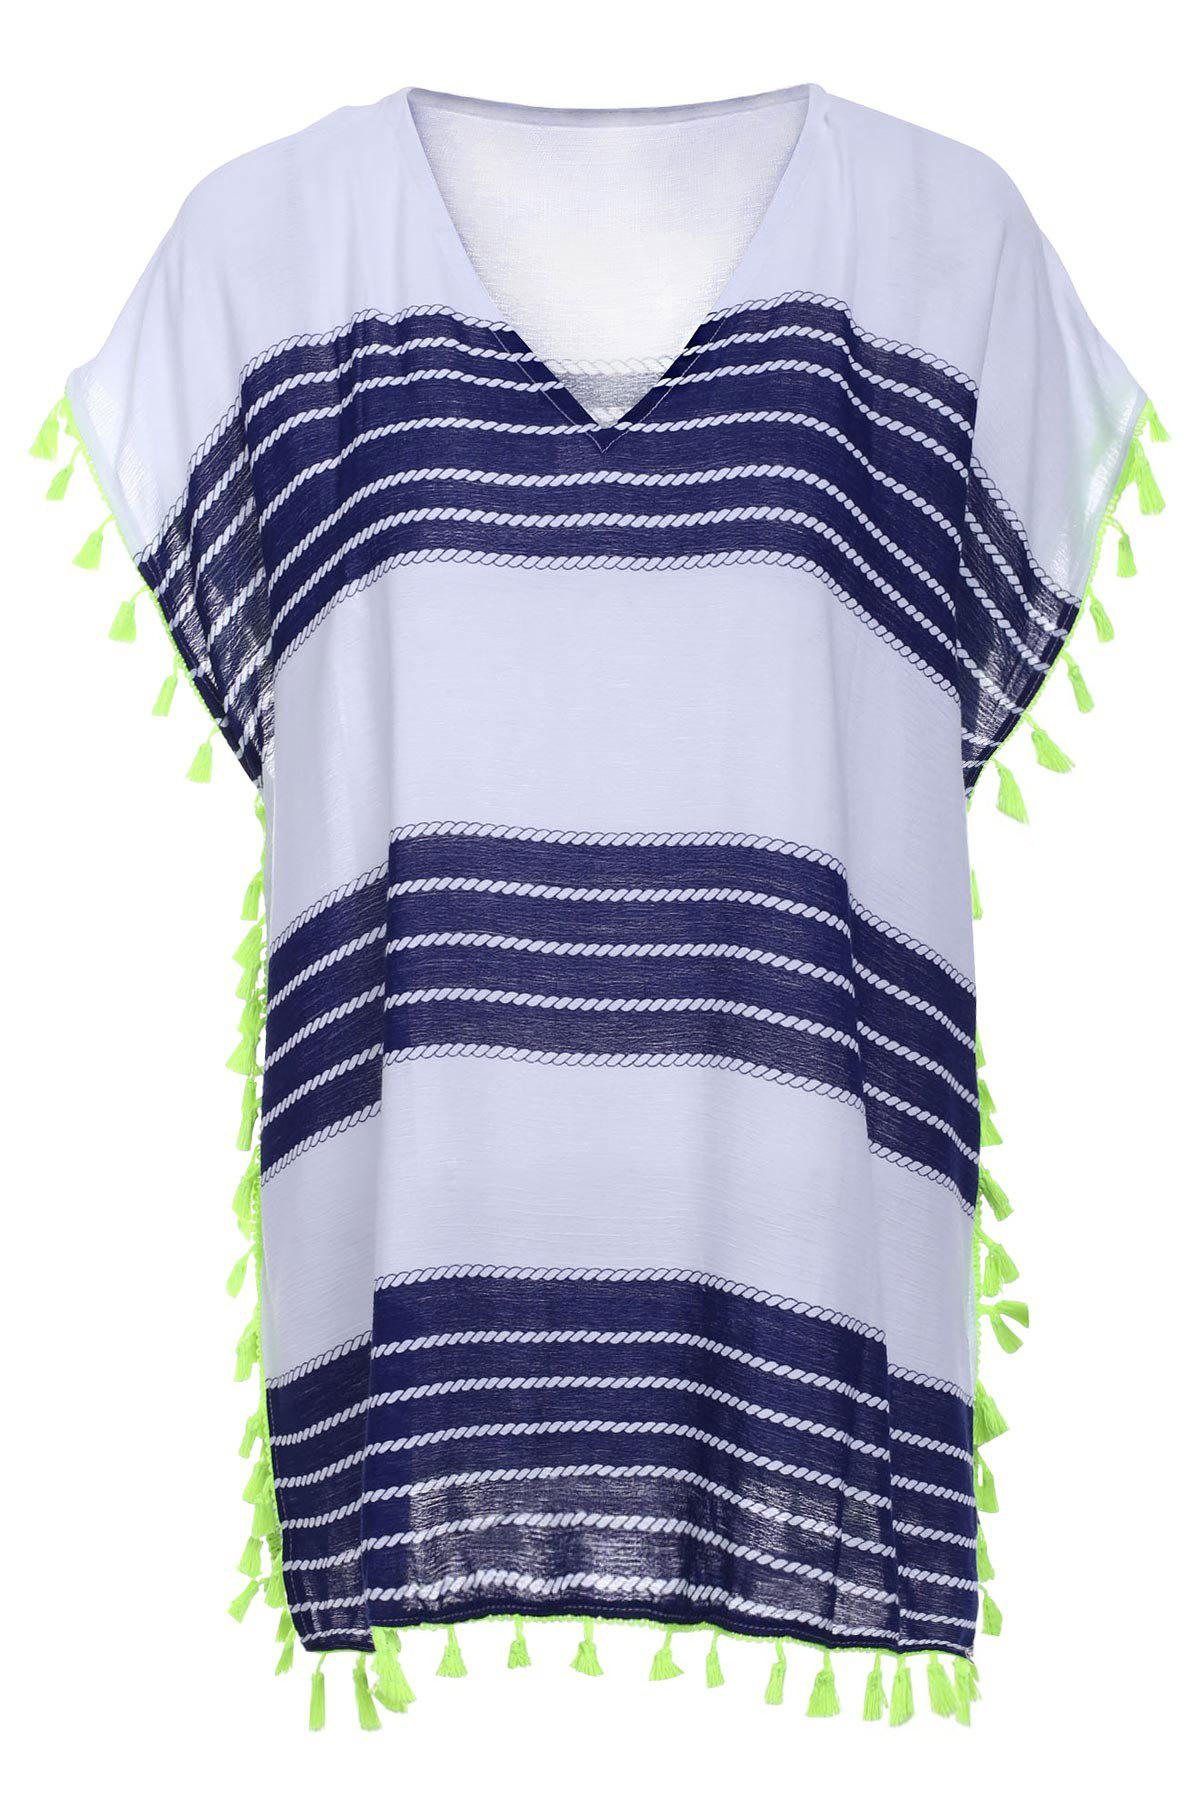 Stylish V-Neck Short Sleeve Striped Fringed Women's Cover-Up - BLUE/WHITE ONE SIZE(FIT SIZE XS TO M)